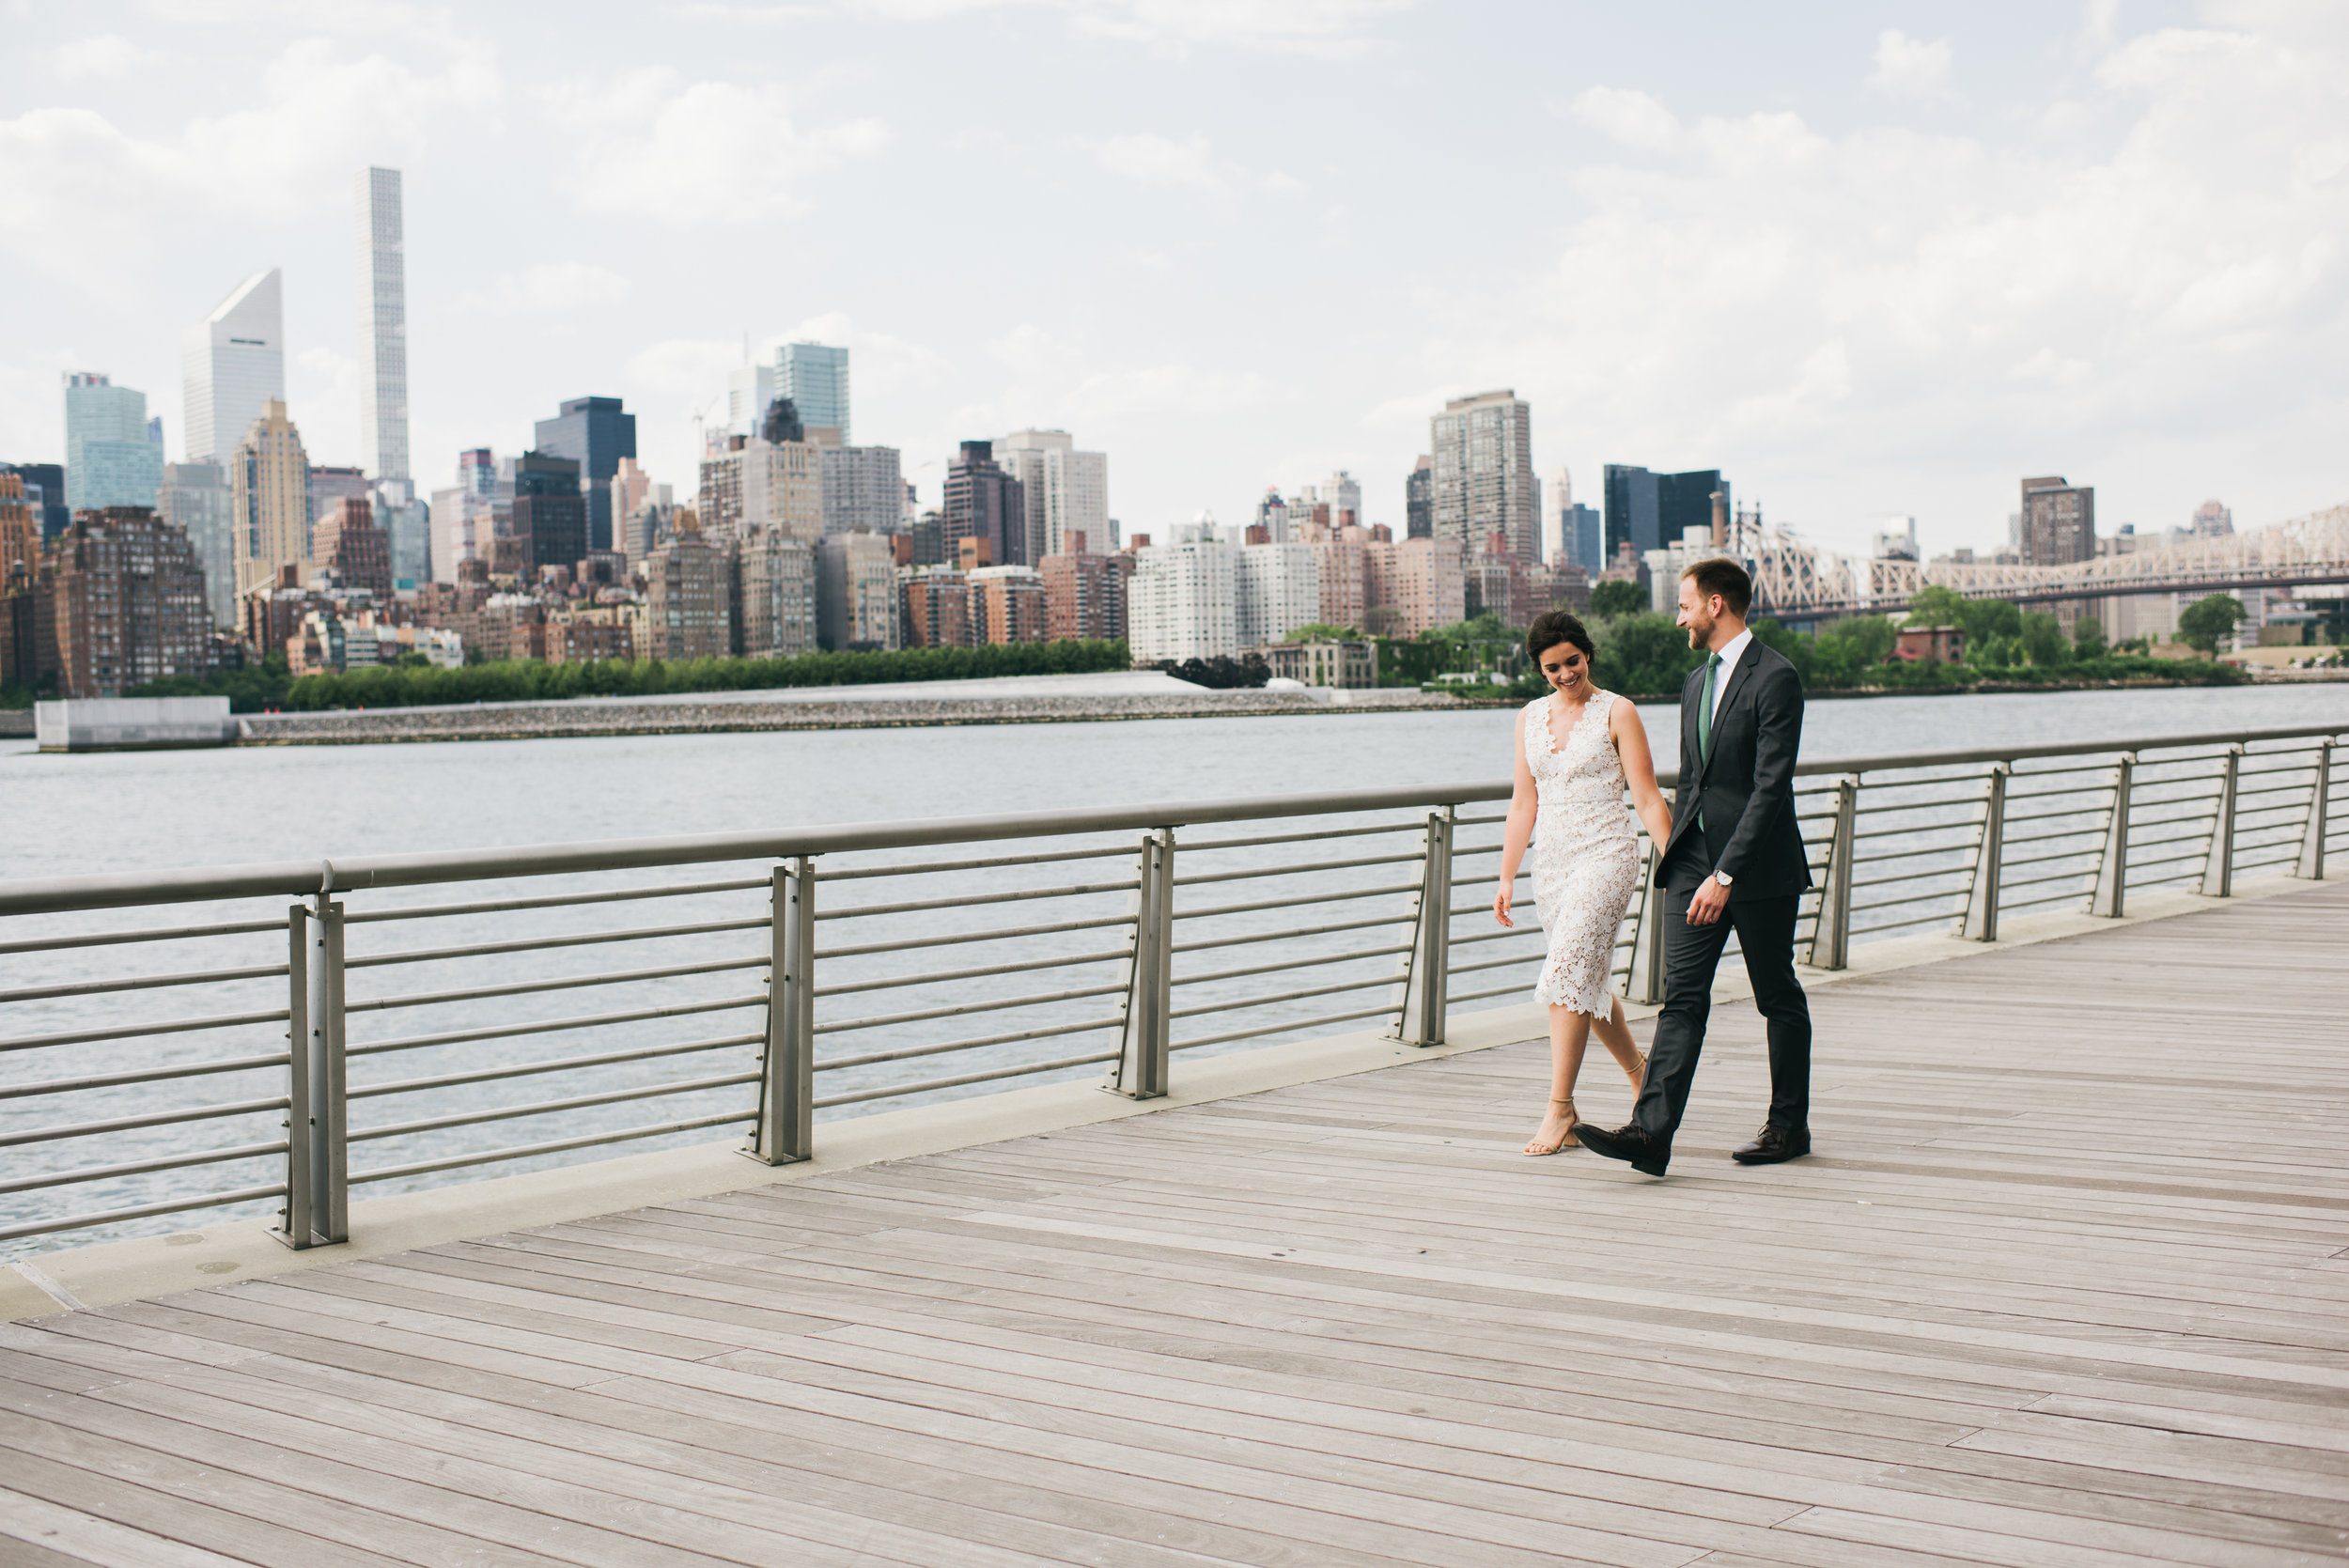 AMANDA & MATT - LE FANFARE NYC - INTIMATE WEDDING PHOTOGRAPHER by CHI-CHI ARI-191.jpg